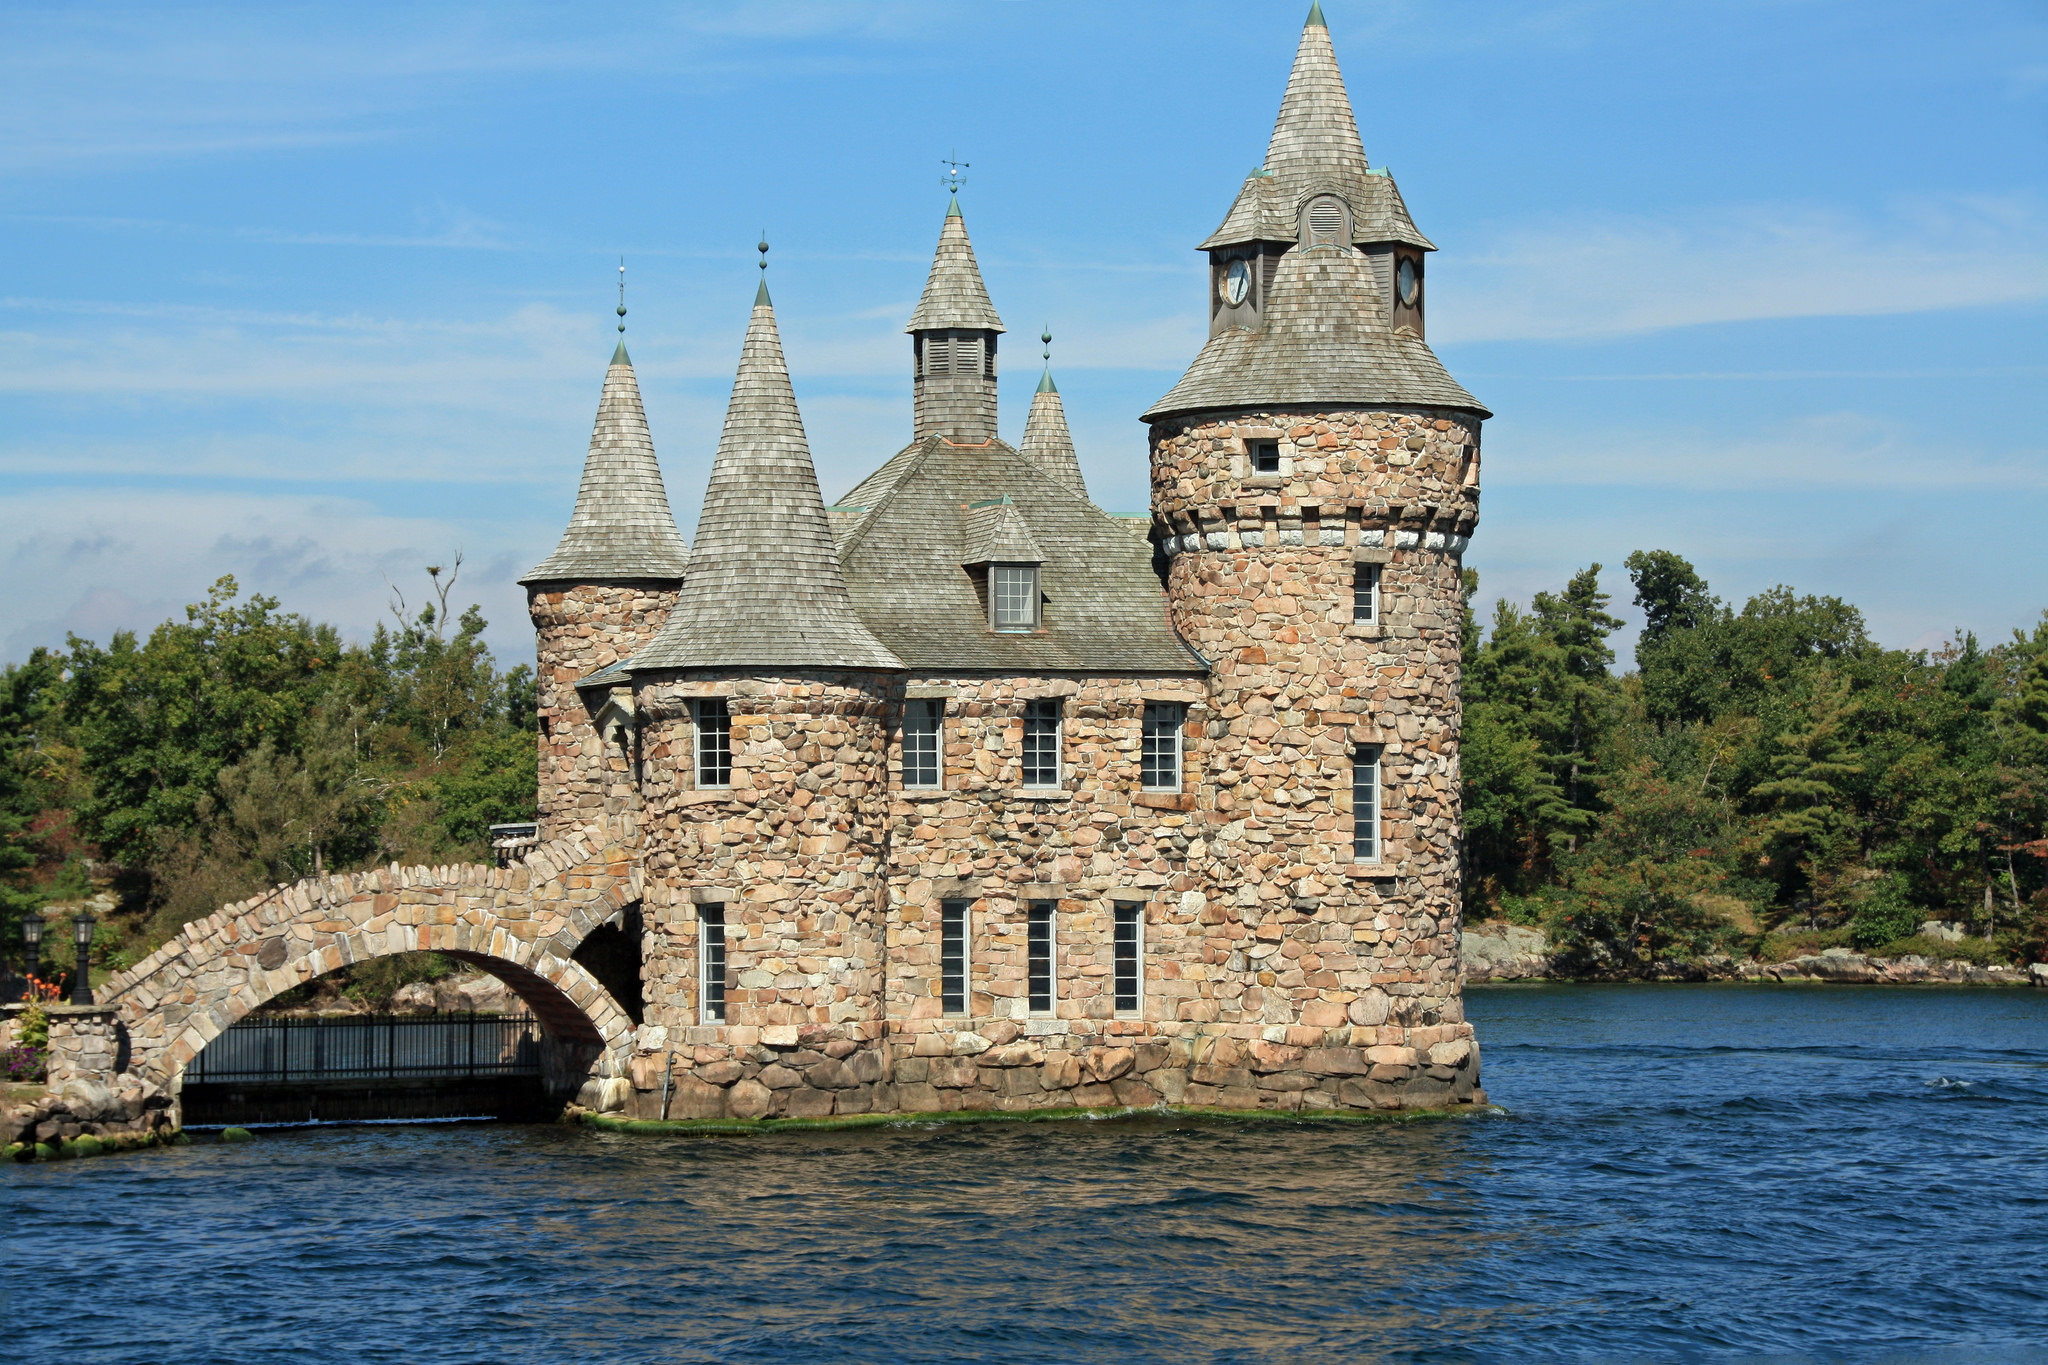 the oldest castles you can still visit in the world